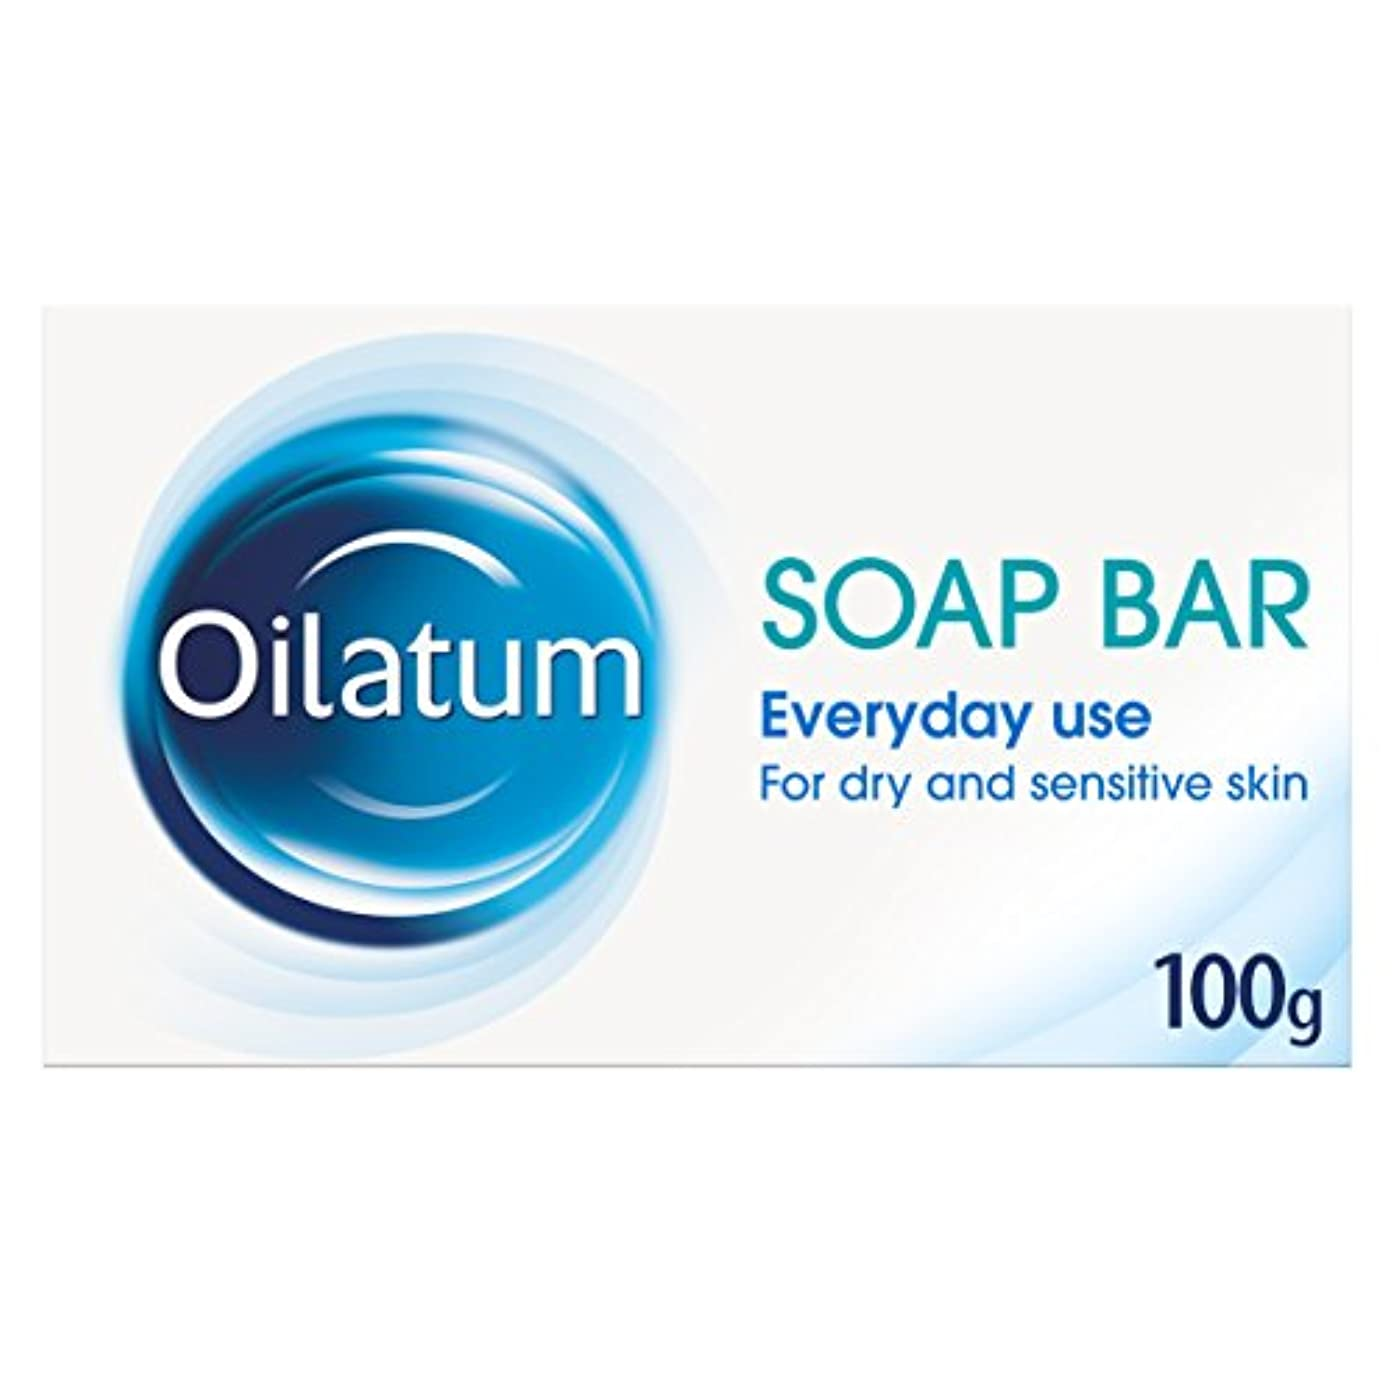 Oilatum 100g Soap Bar for Dry Skin